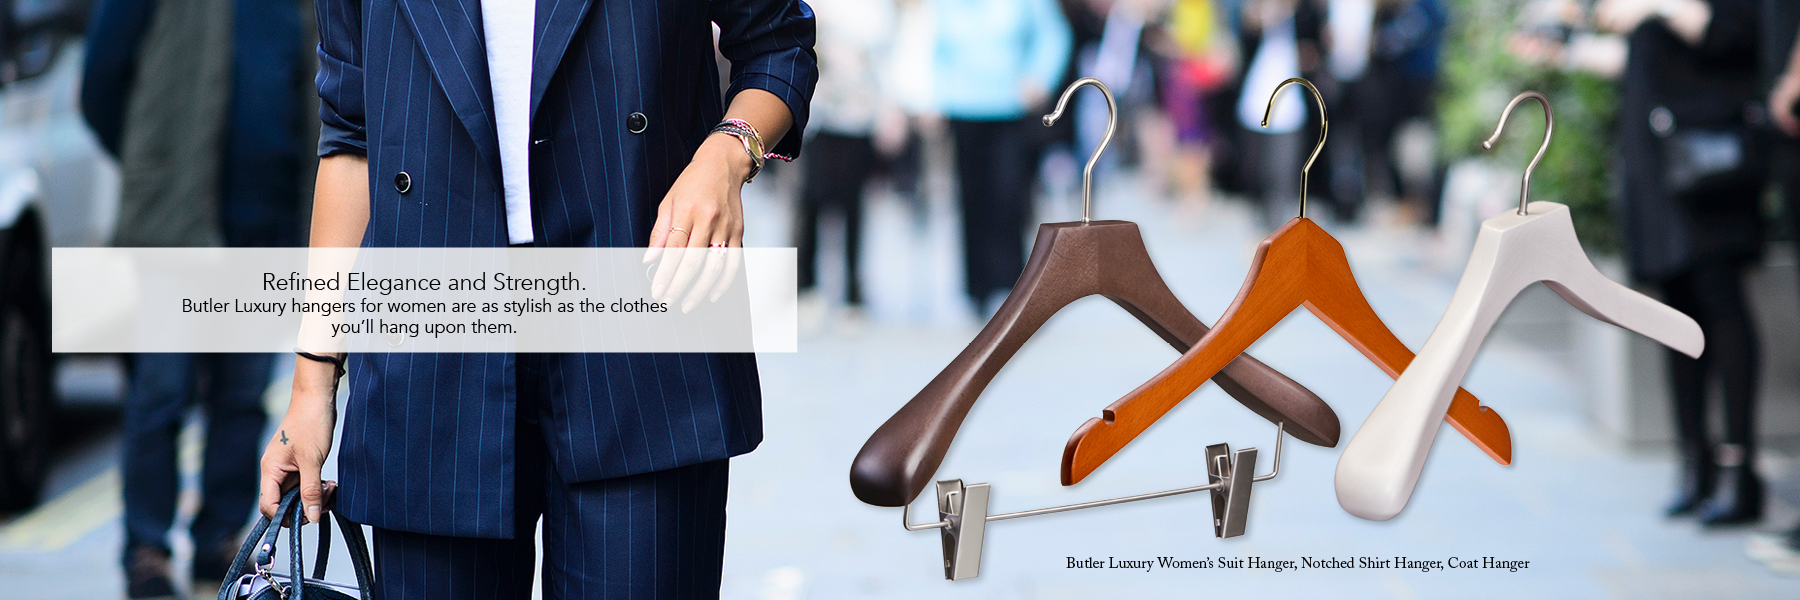 Butler Luxury Hangers for Women